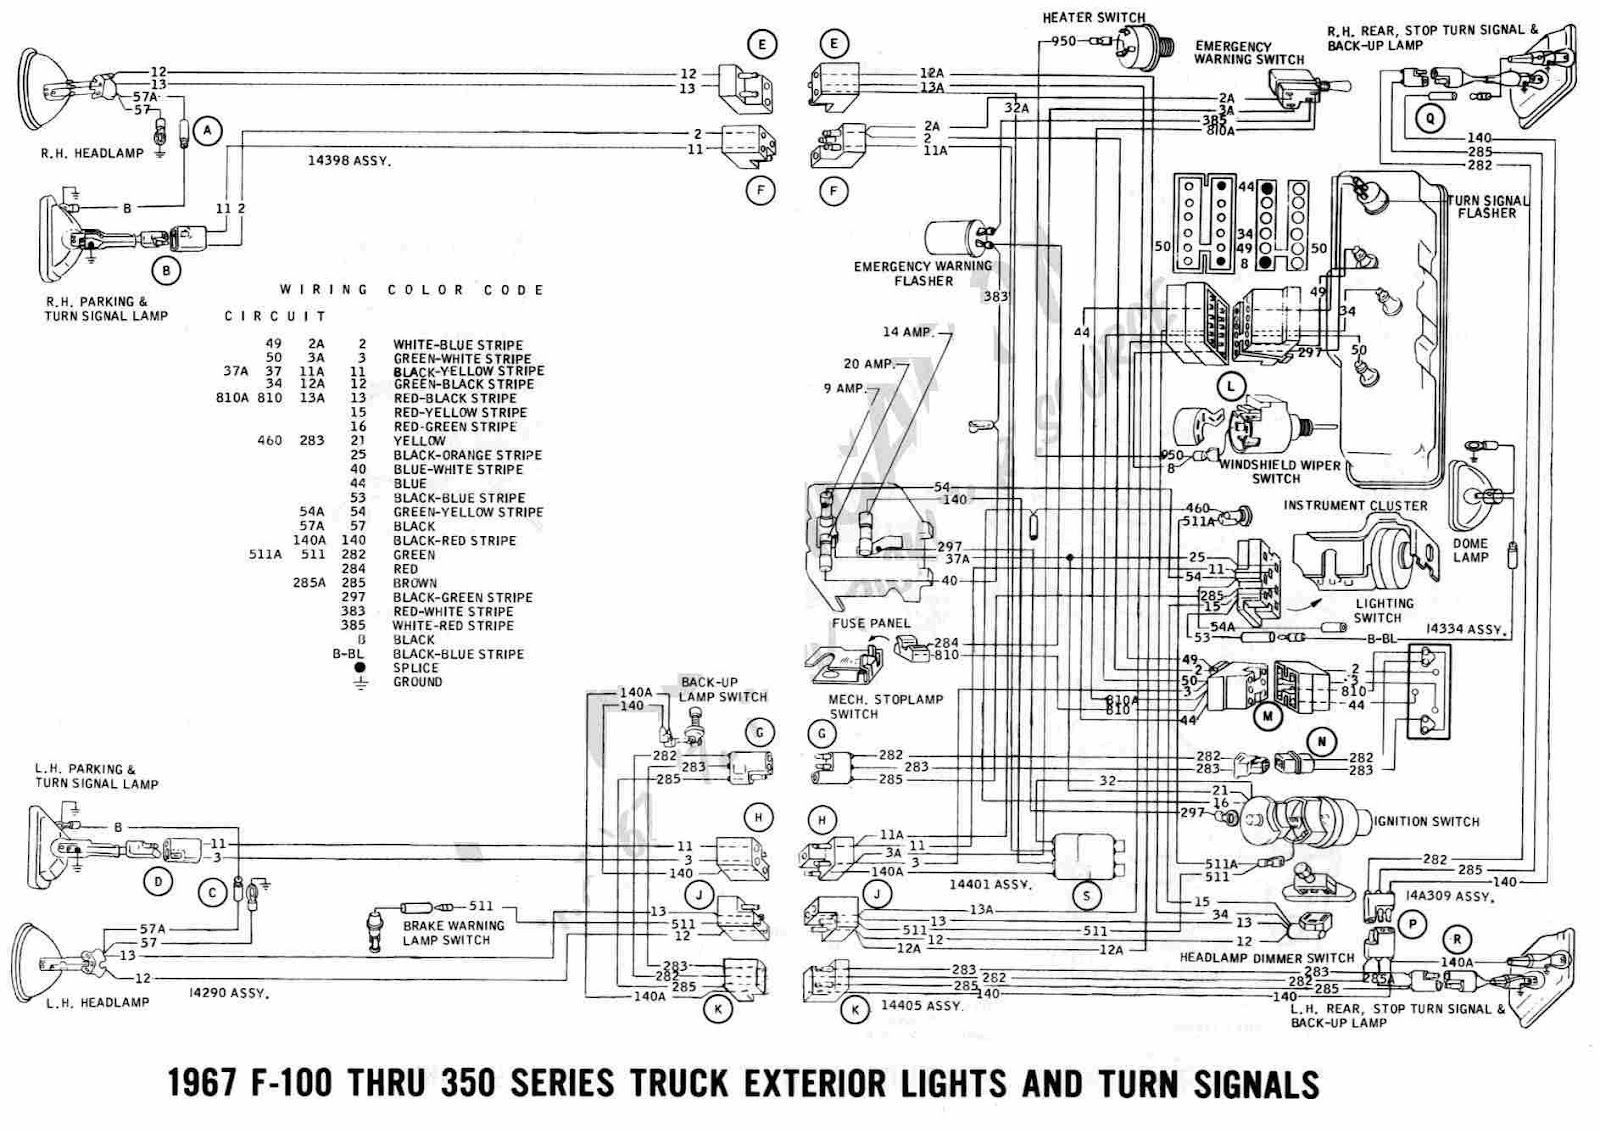 71 Maverick Turn Signal Wiring Diagram Electrical Diagrams Free Download M939 Switch